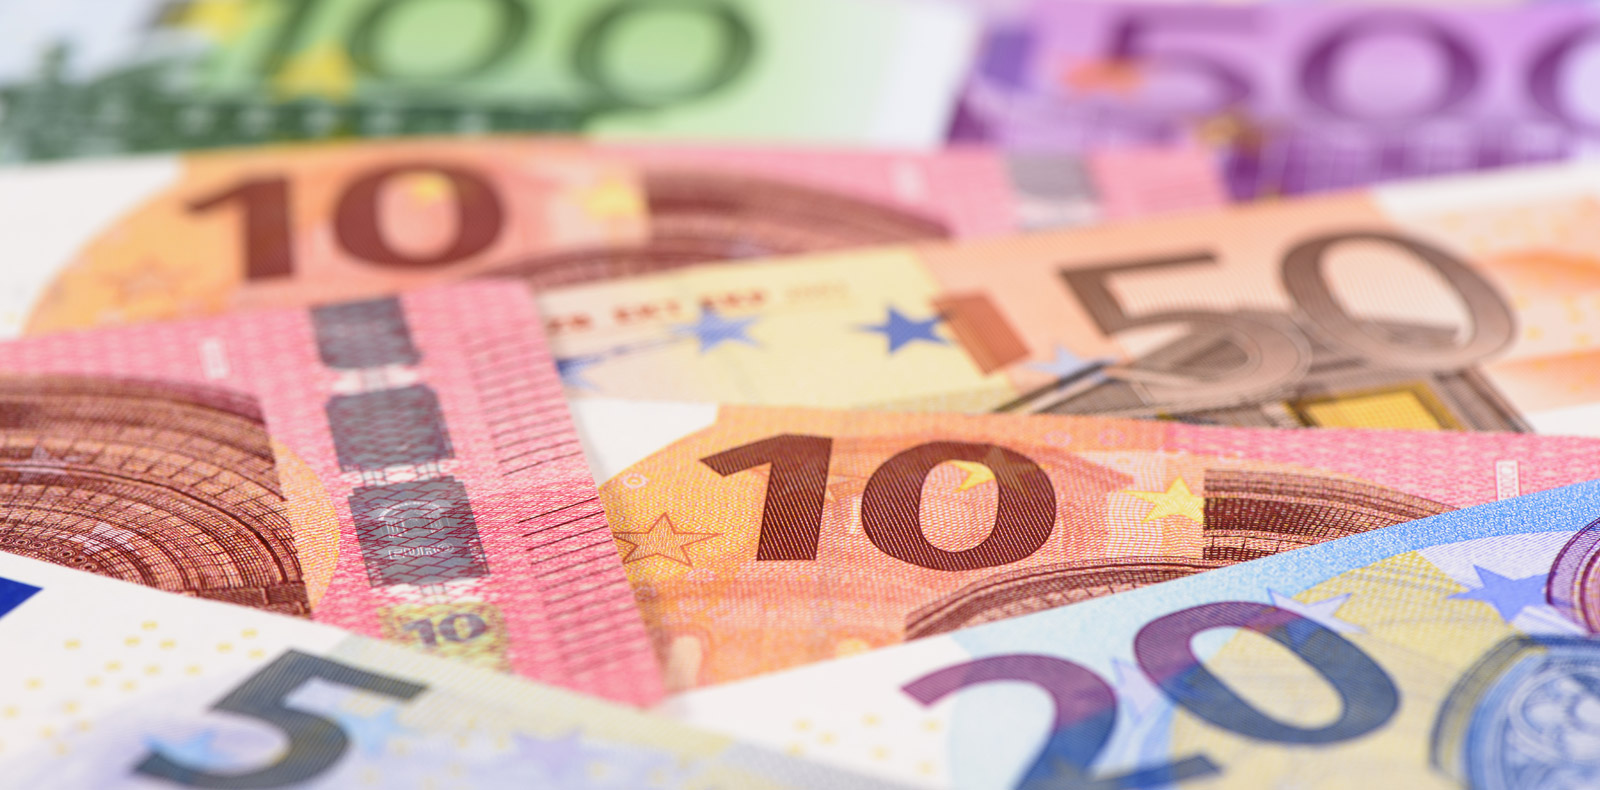 Underlying Eurozone weakness sees EUR/USD drop